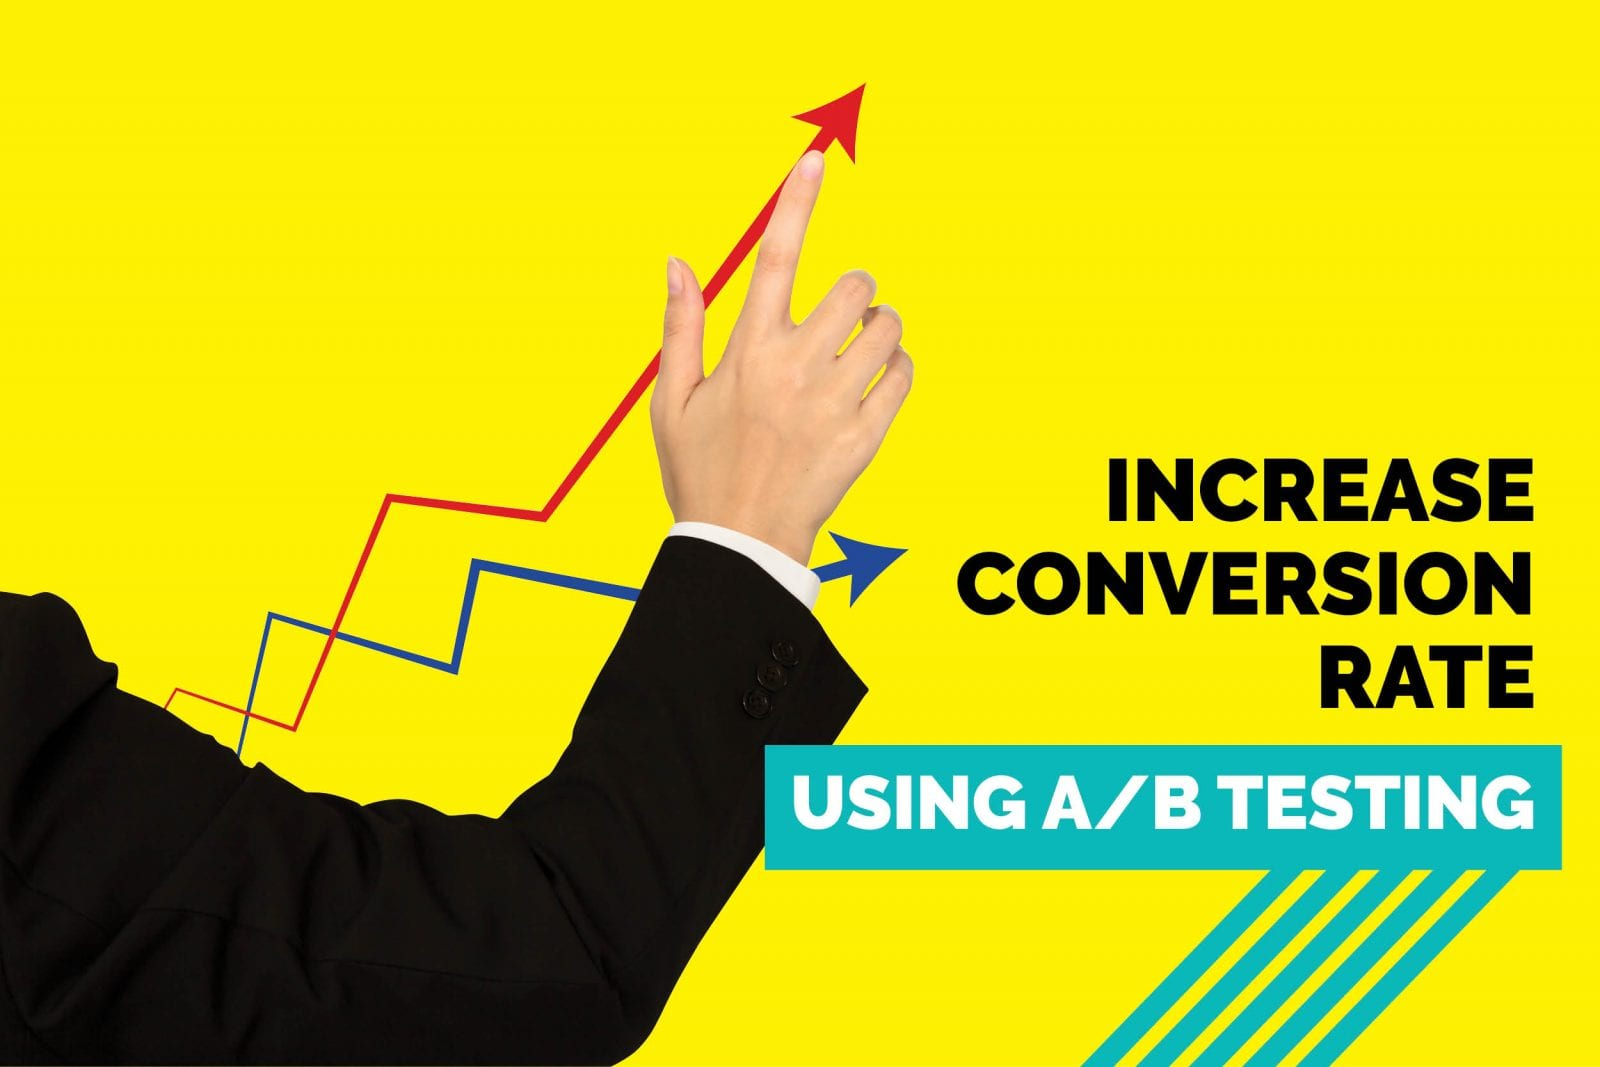 How to Increase Conversion Rate Using A/B Testing